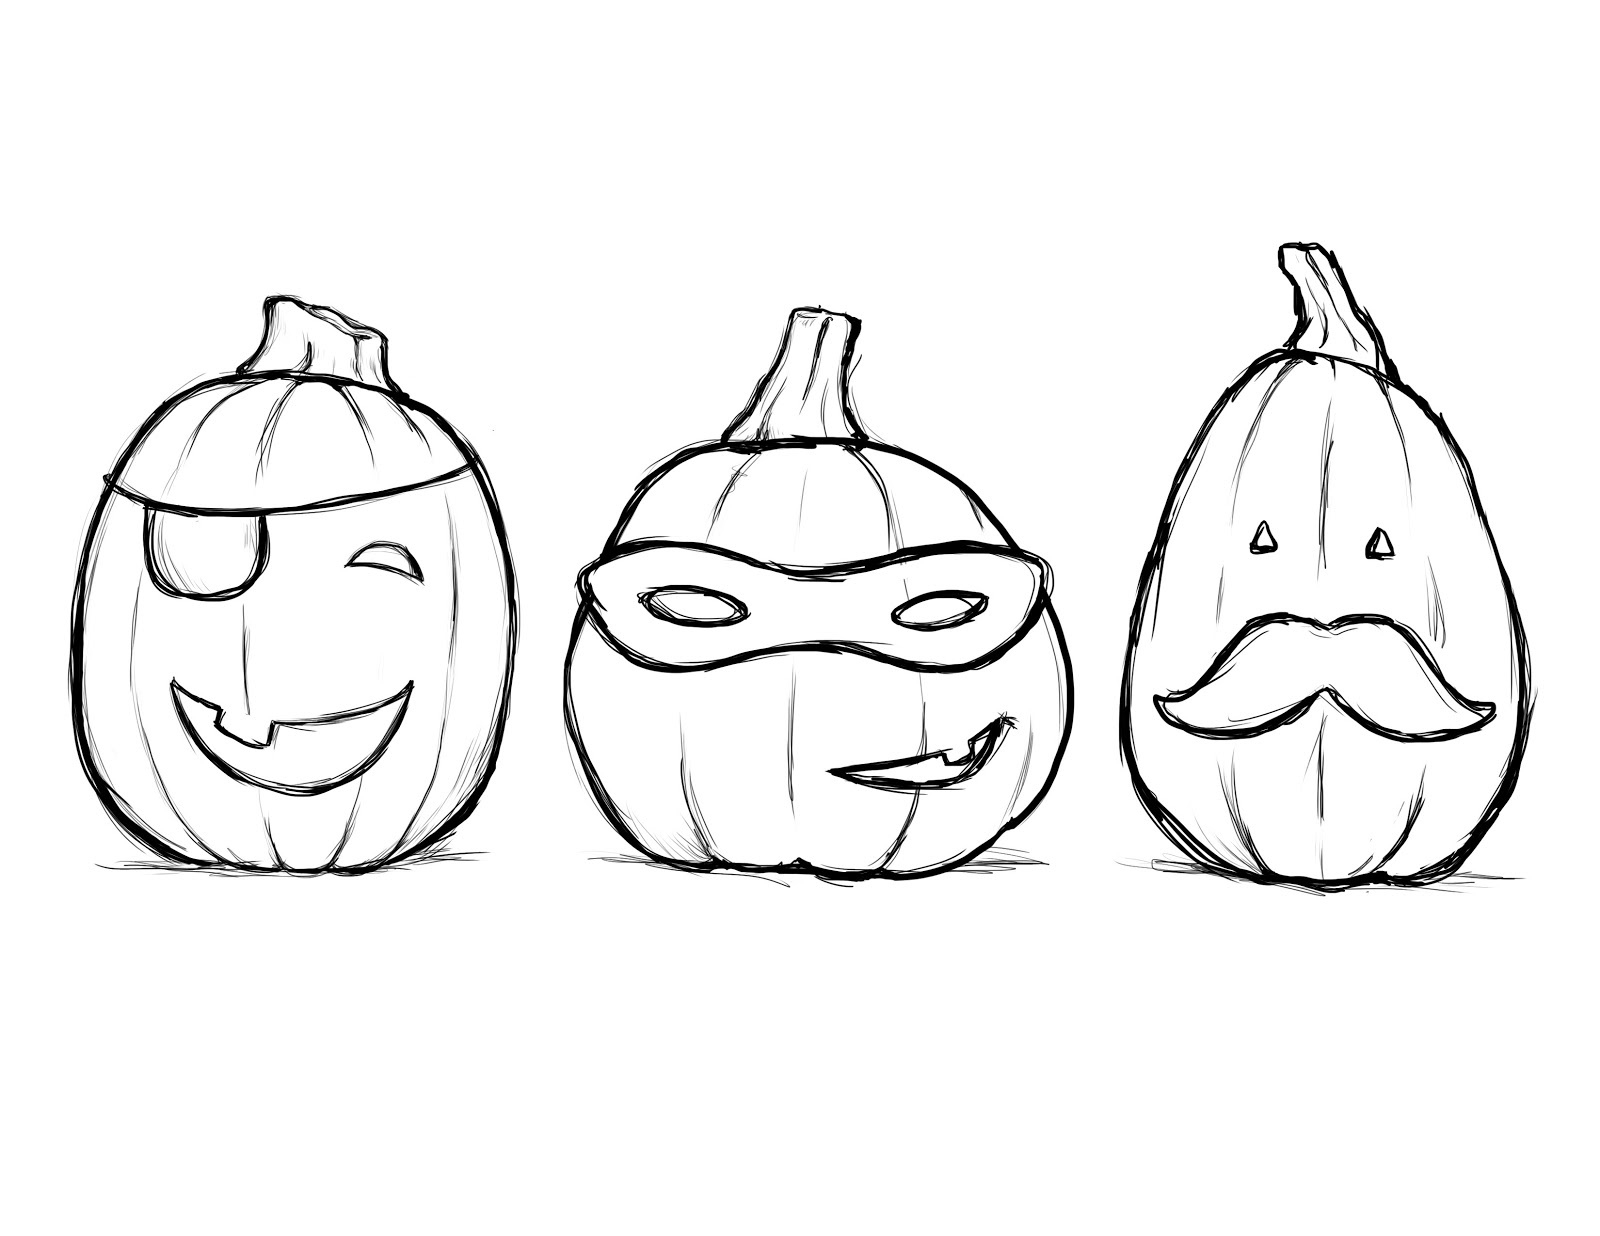 Coloring Page Of Pumpkin Easy Harvest Coloring Pages With Fall Pumpkin Coloring Pages 2213 9